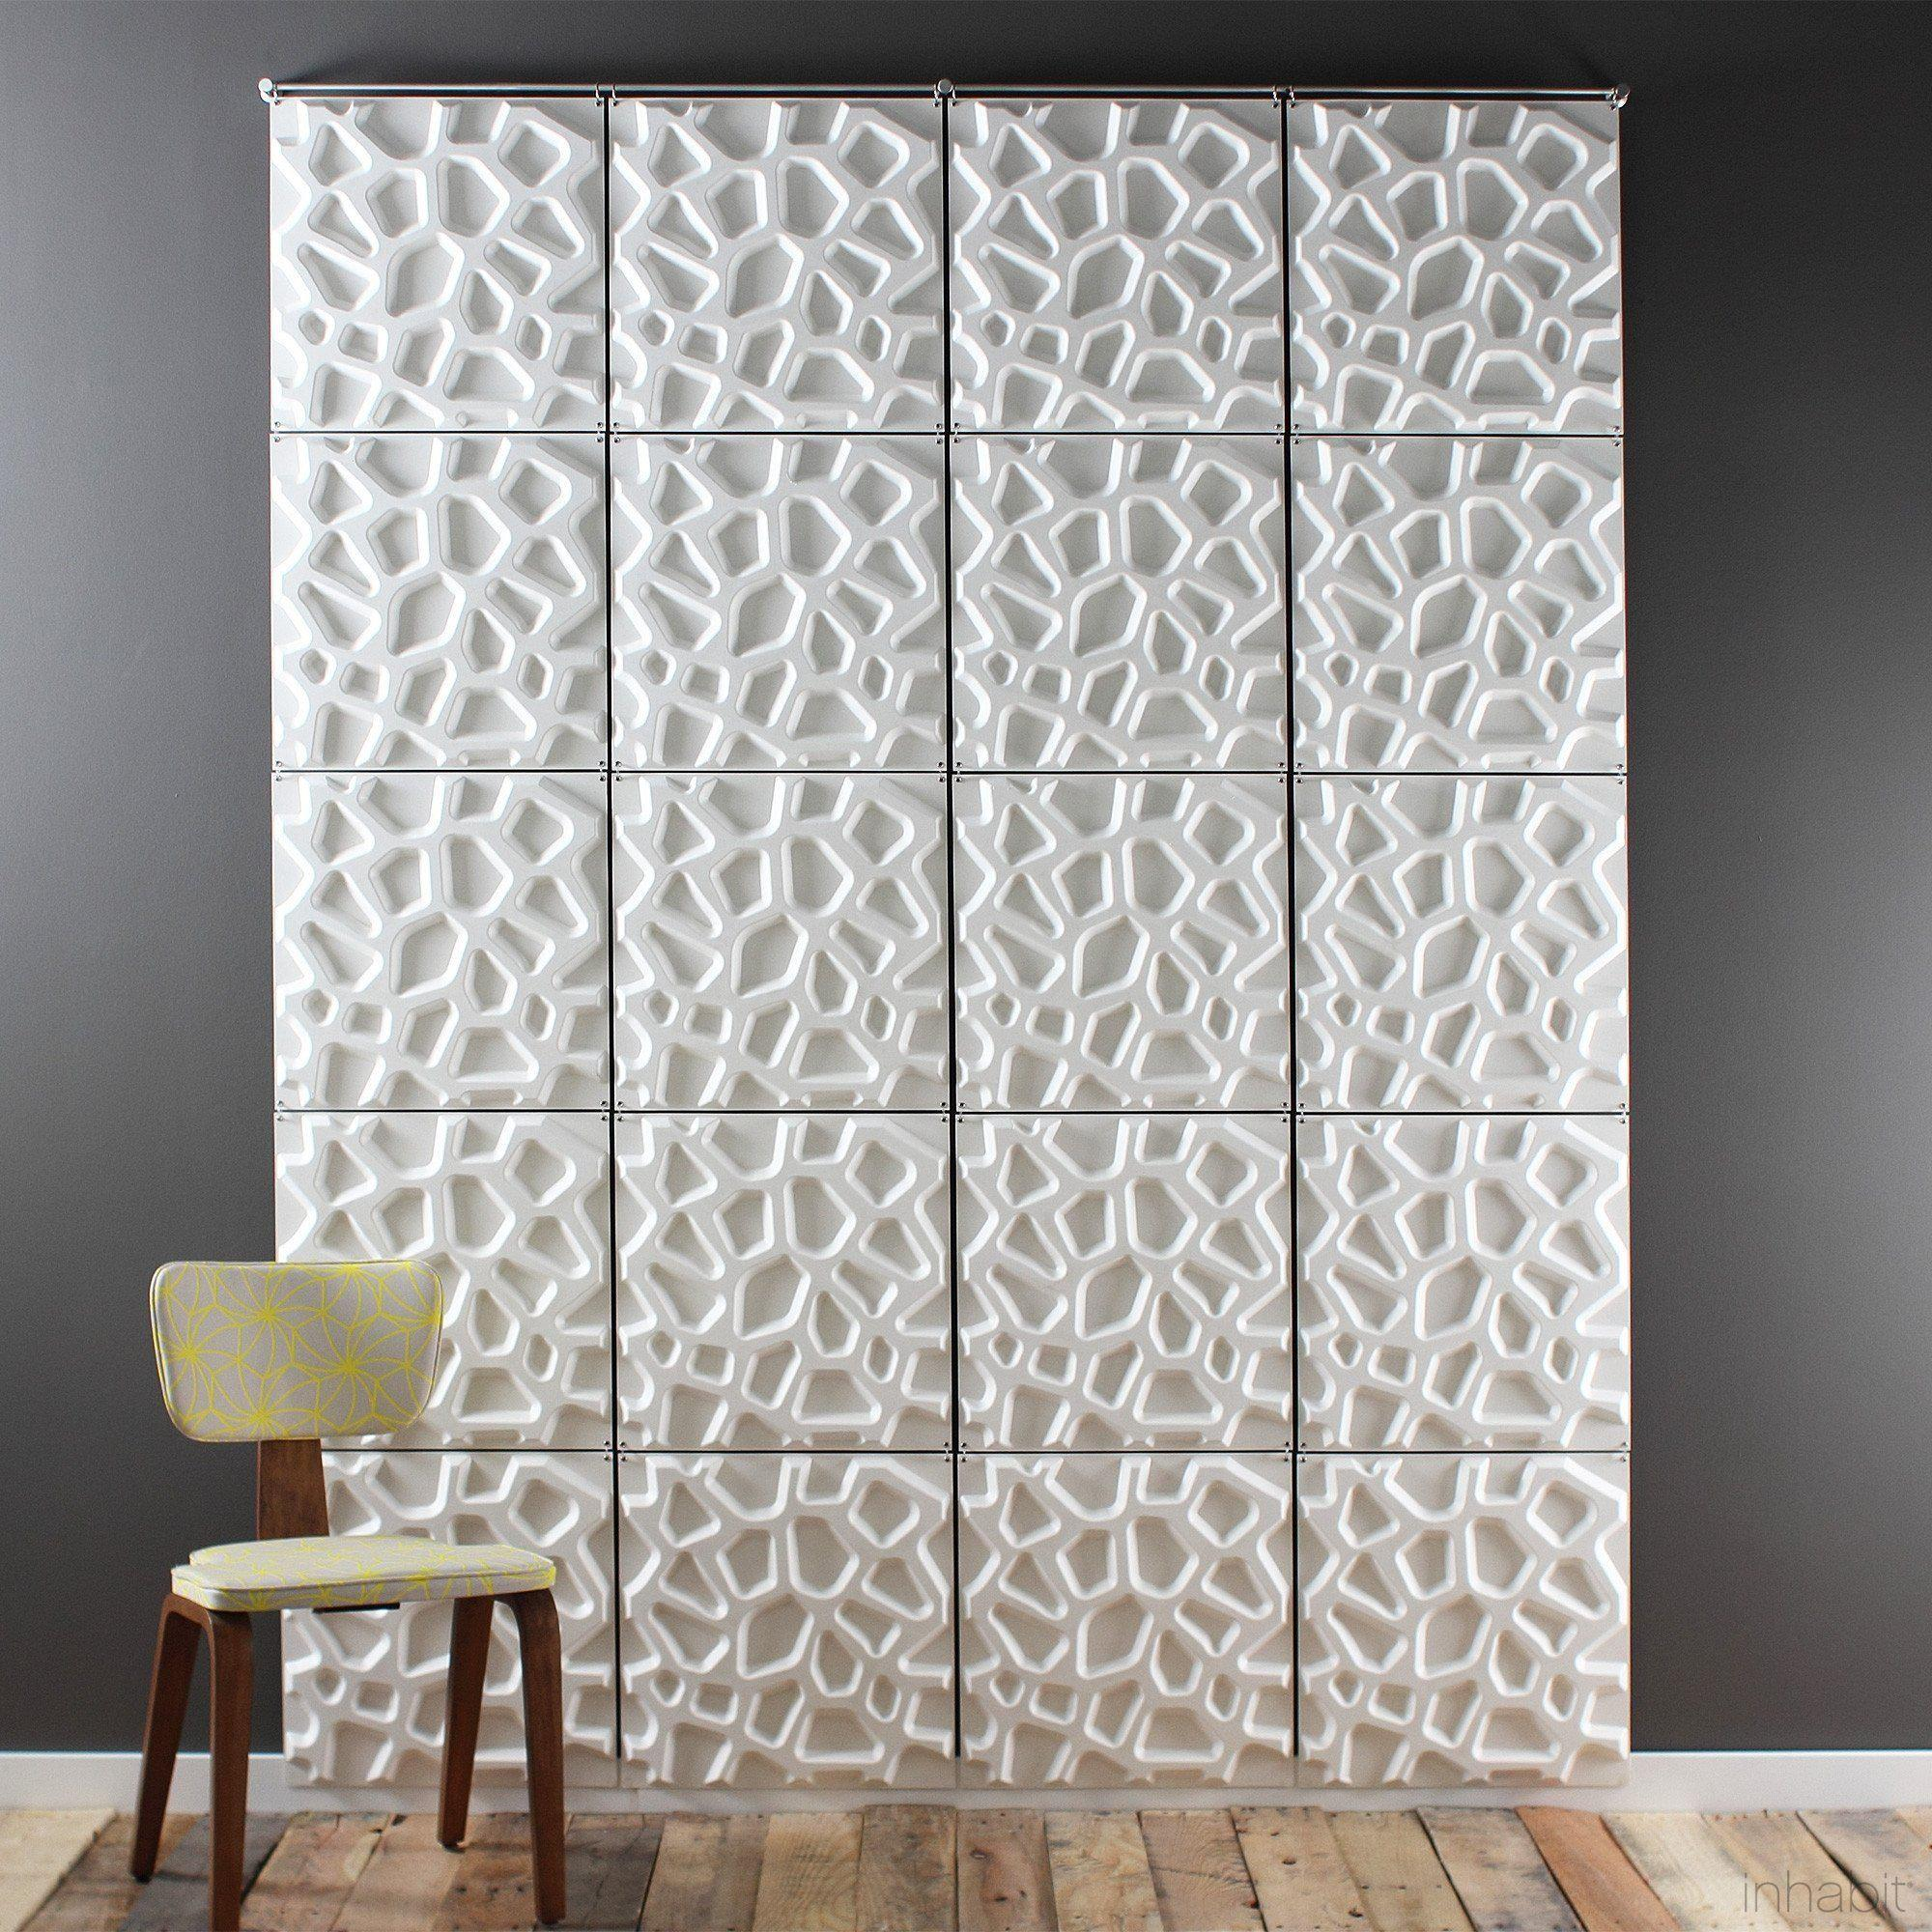 Hanging Decorative Wall Panels